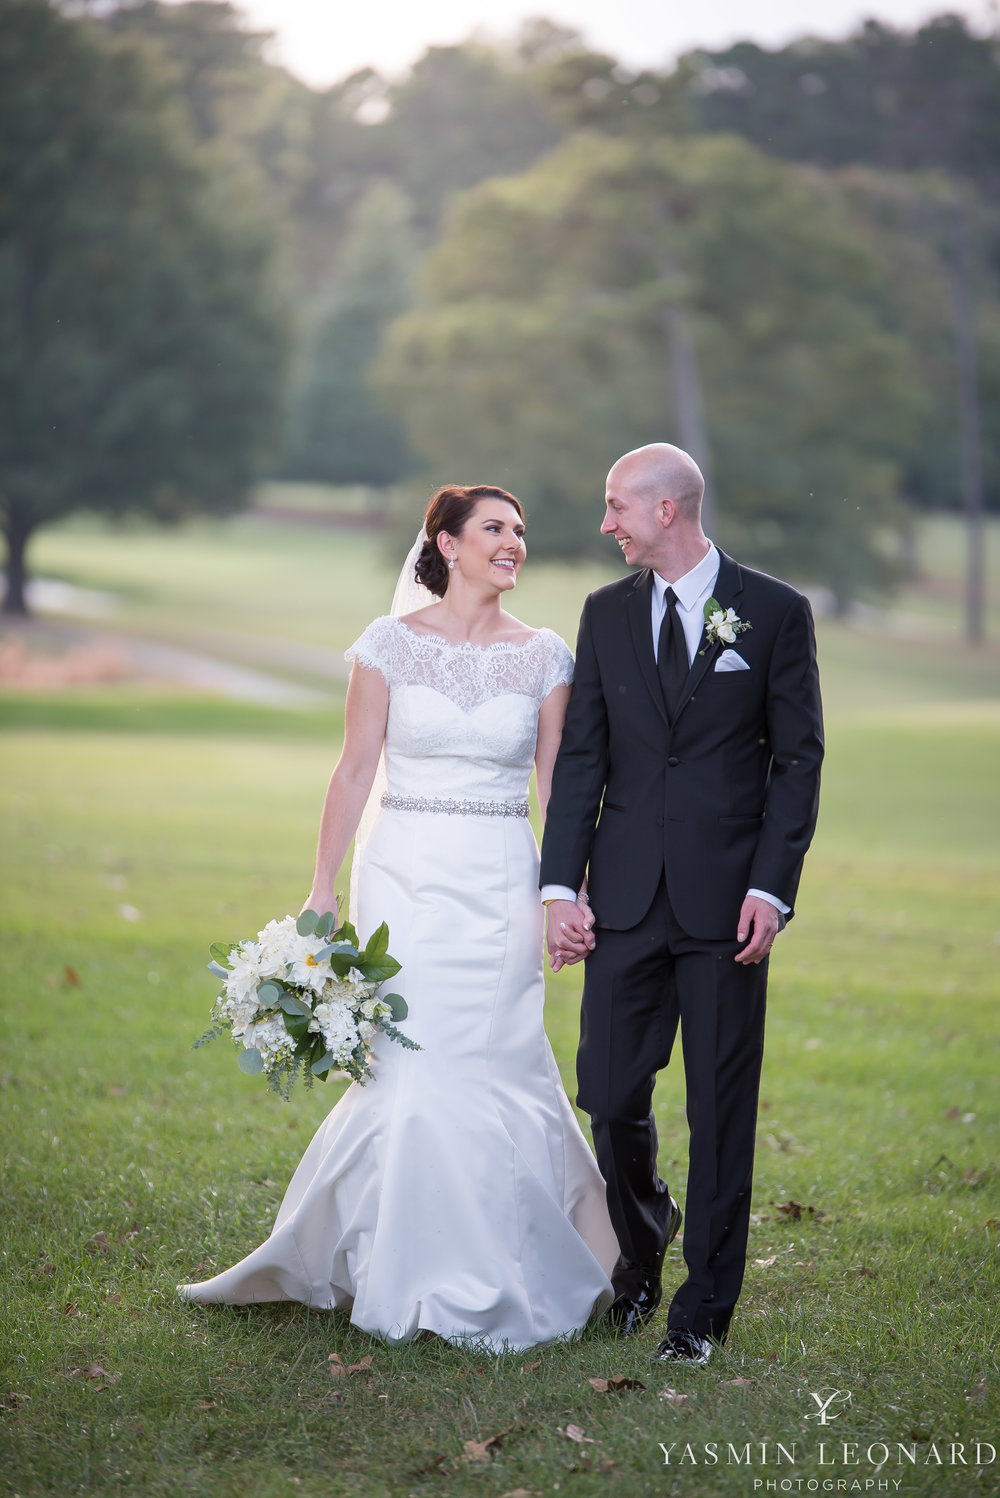 Forsyth Country Club - Winston Salem, NC - NC Wedding Photographer - Winston Salem Weddings - Winston Salem Wedding Venues-45.jpg